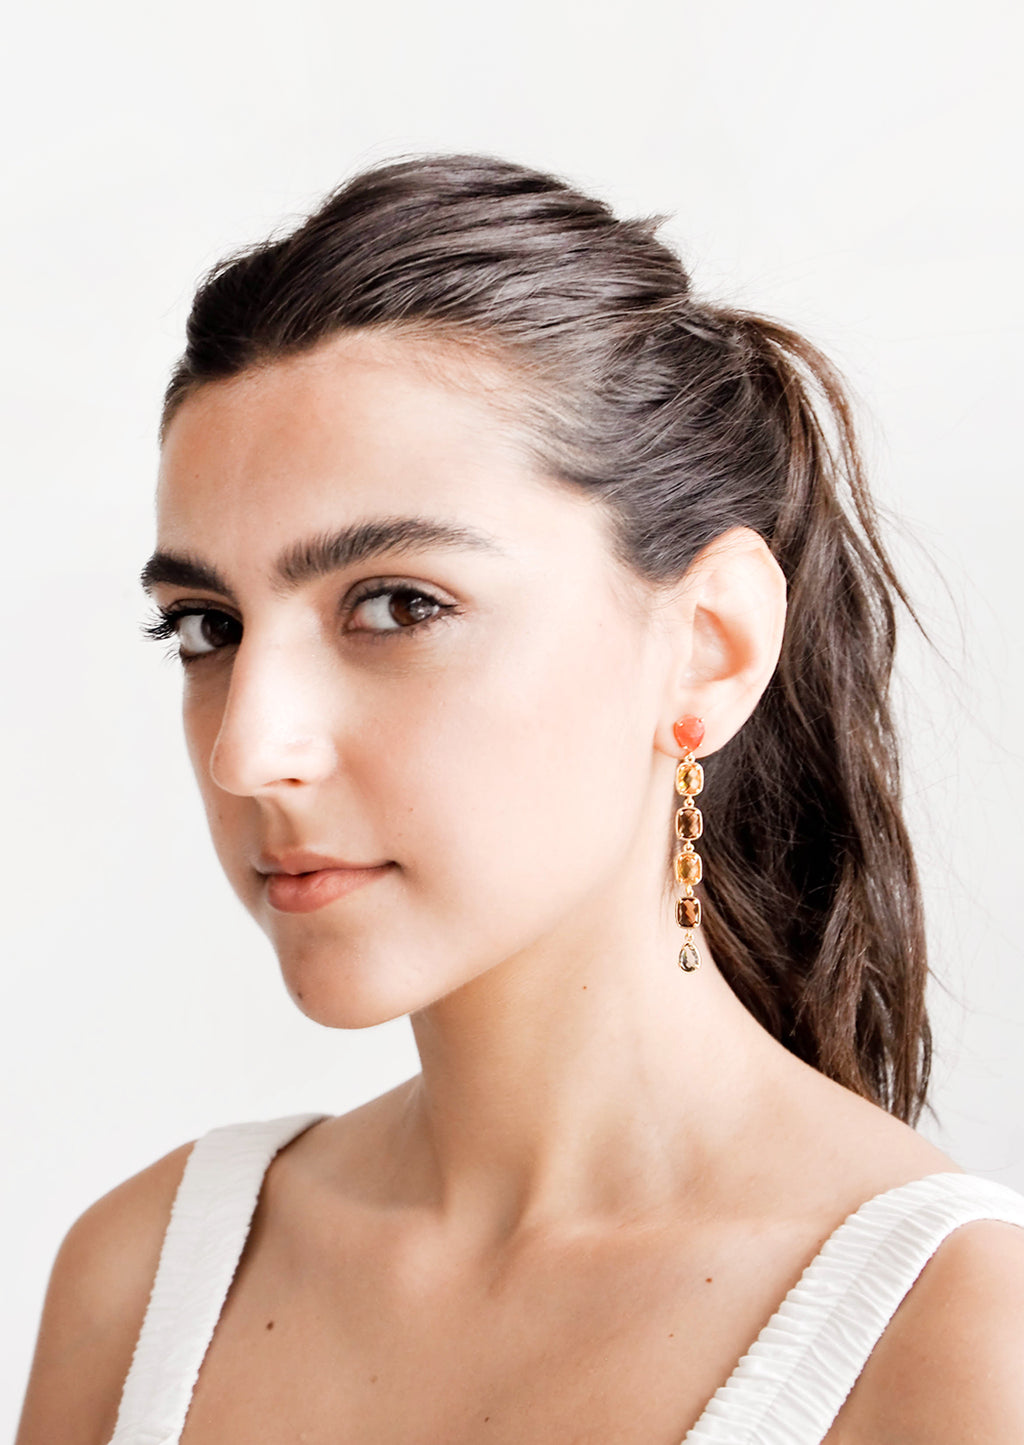 2: Model wears glass crystal drop earrings and white tank top.